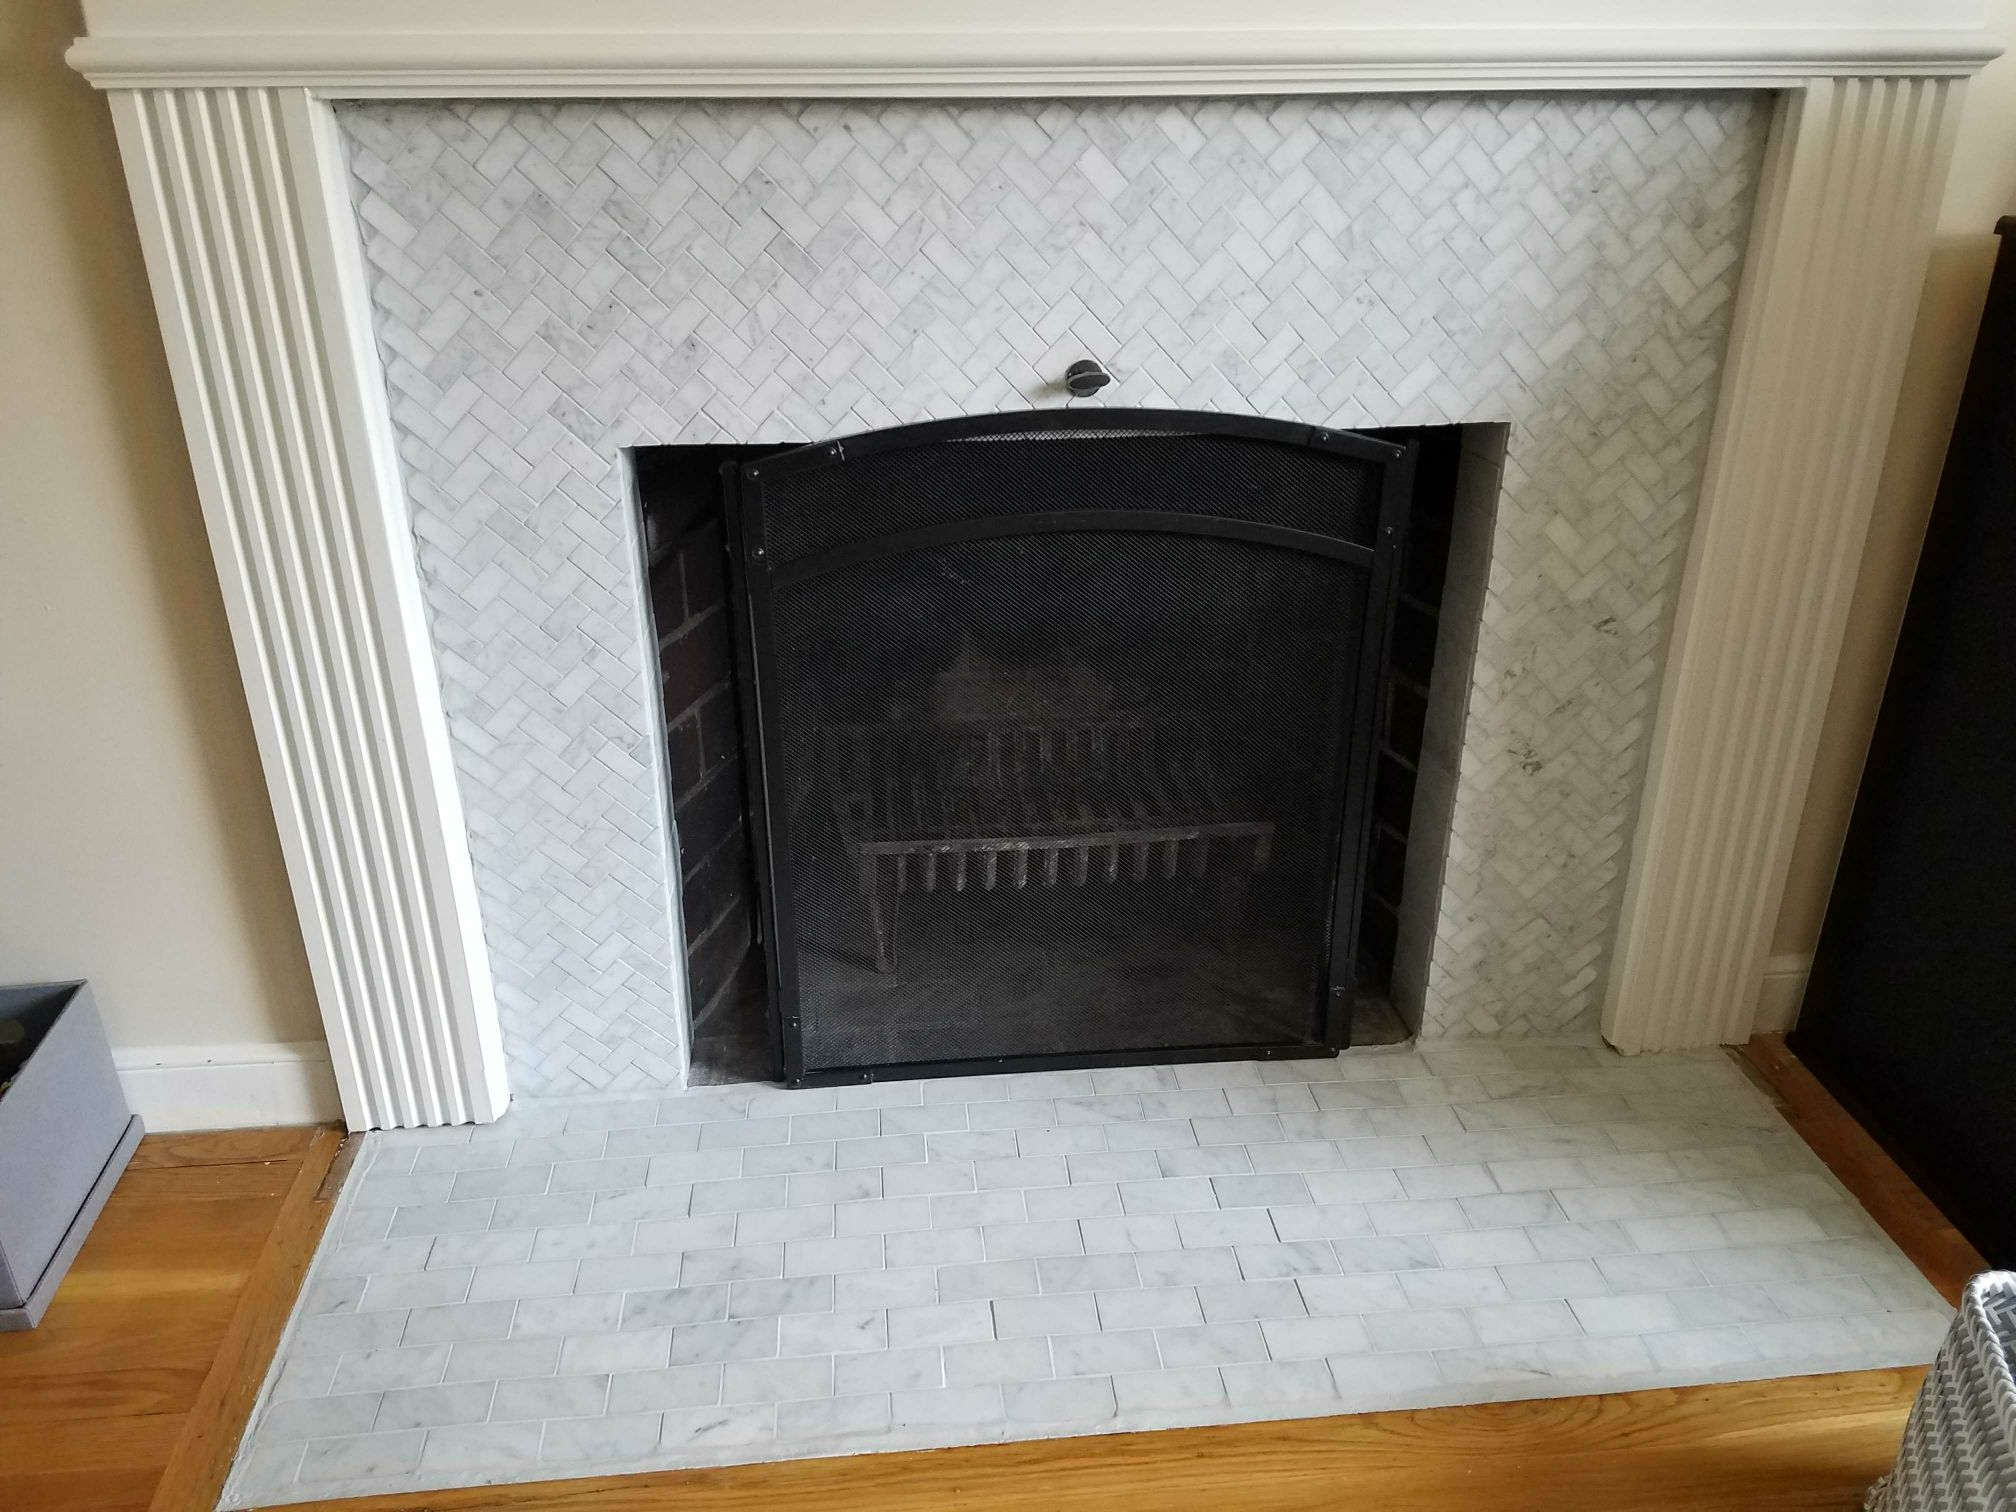 Refacing A Brick Fireplace, How To Reface A Brick Fireplace With Tile